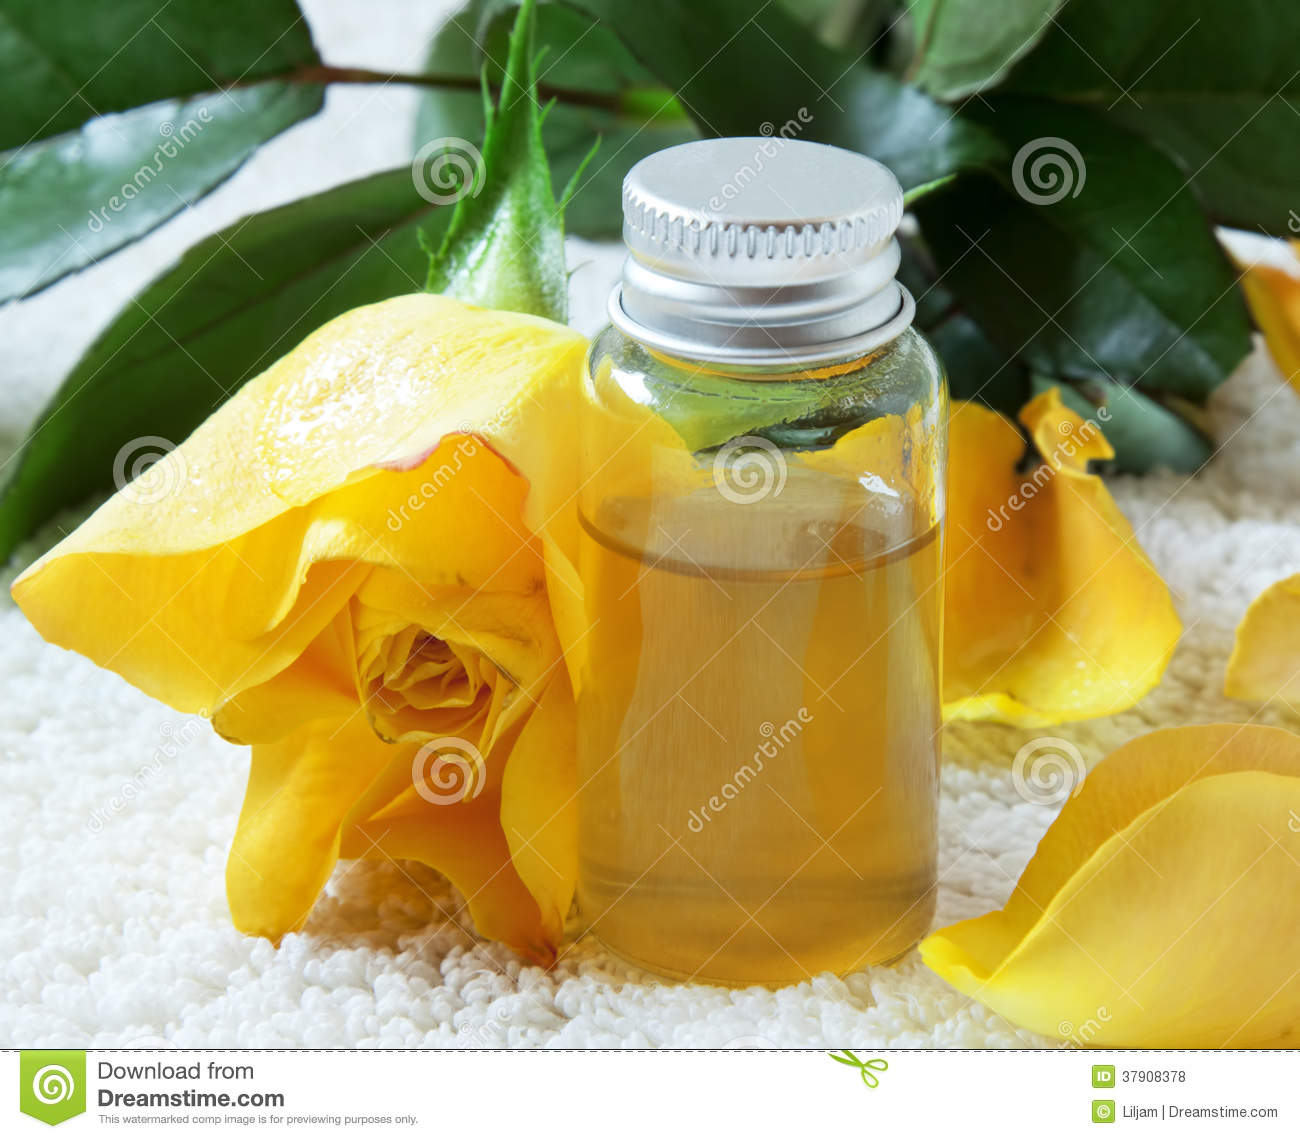 Rose essential oil royalty free stock photos image 37908378 - Rose essential oil business ...